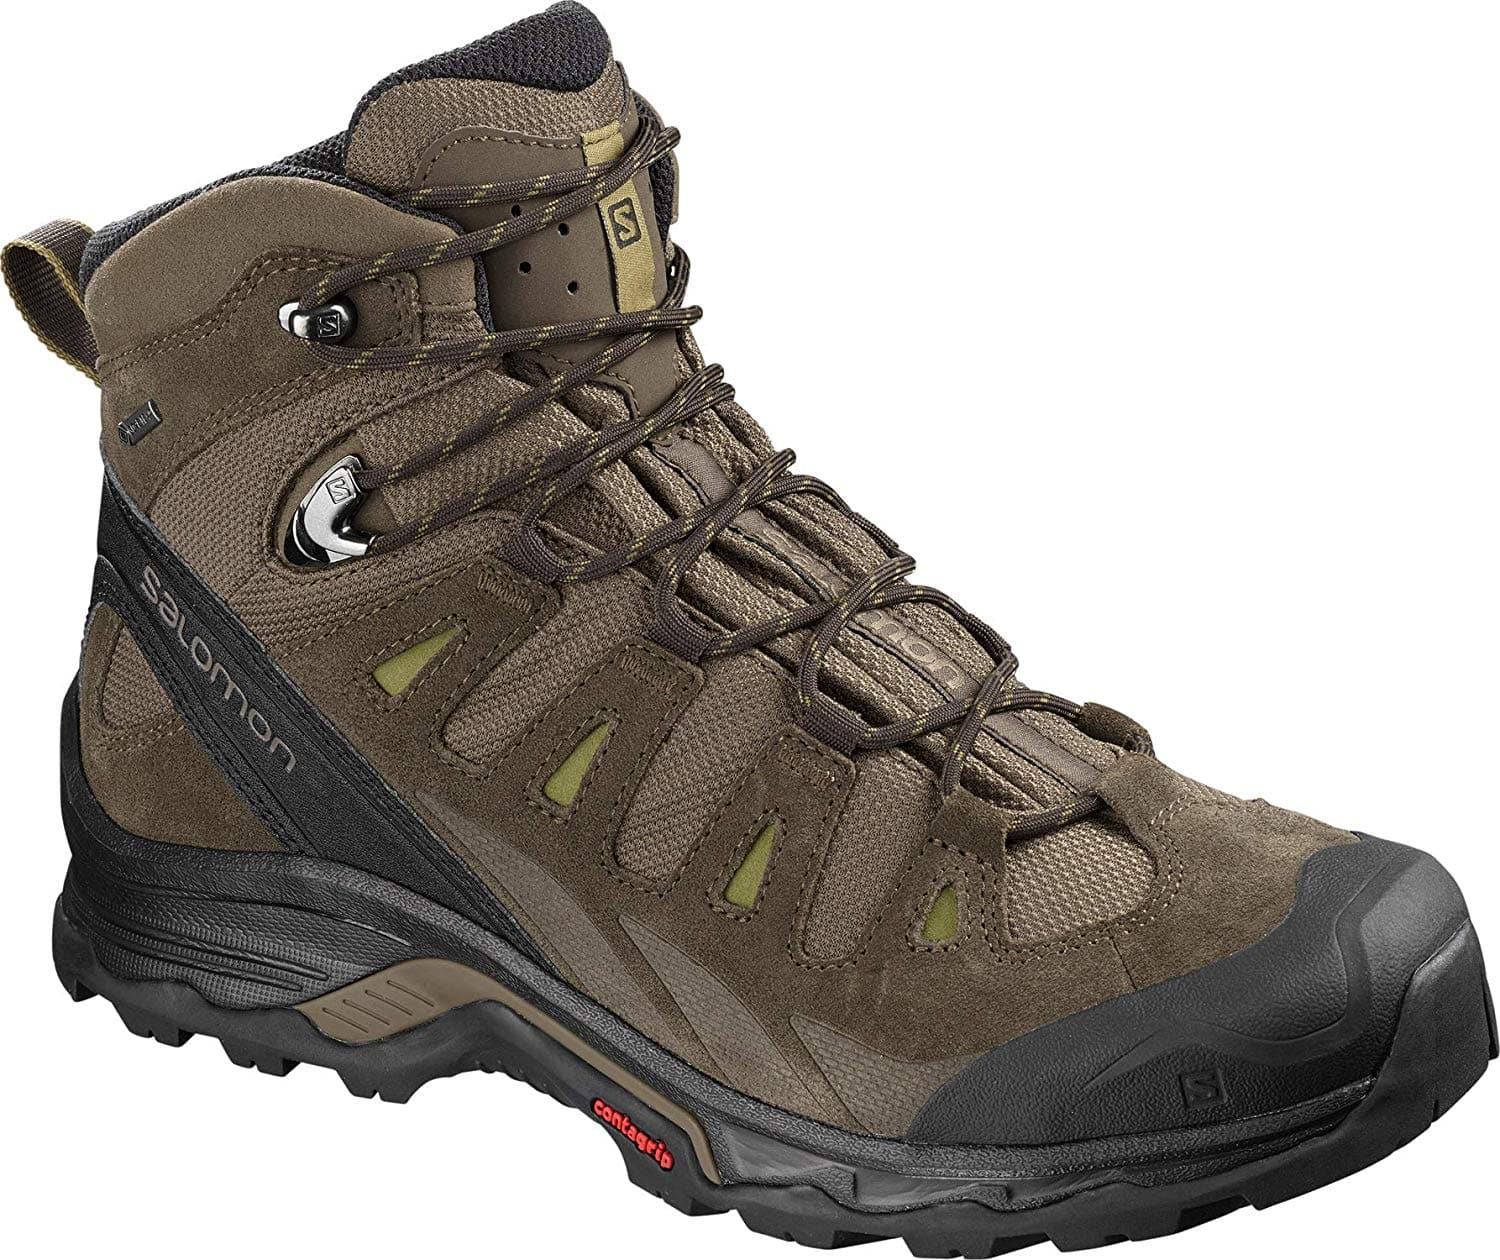 Salomon Men's Quest Prime GTX Backpacking Boots $95 + Free Shipping